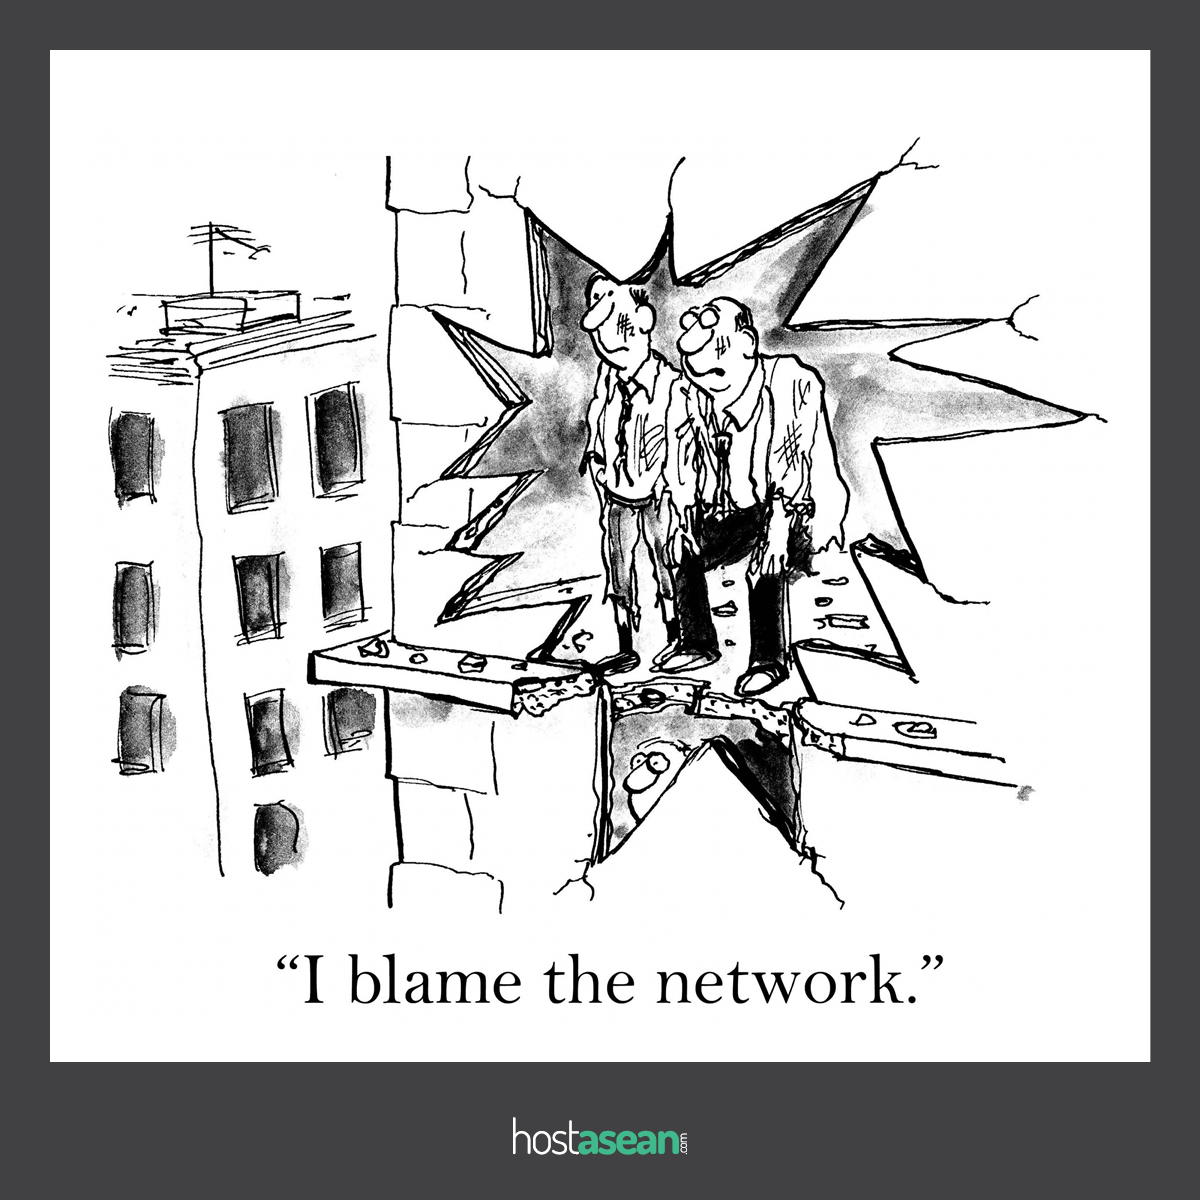 Blame the network